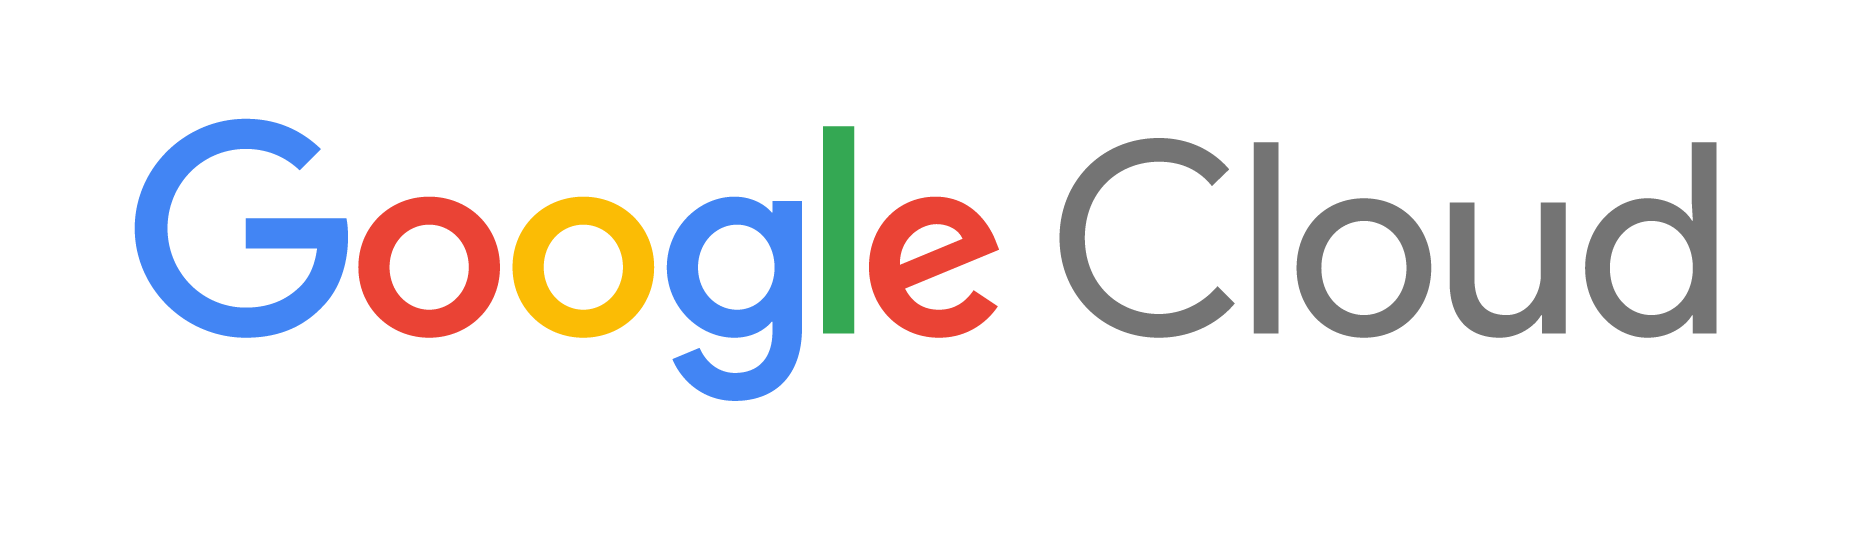 Google-cloud-logo